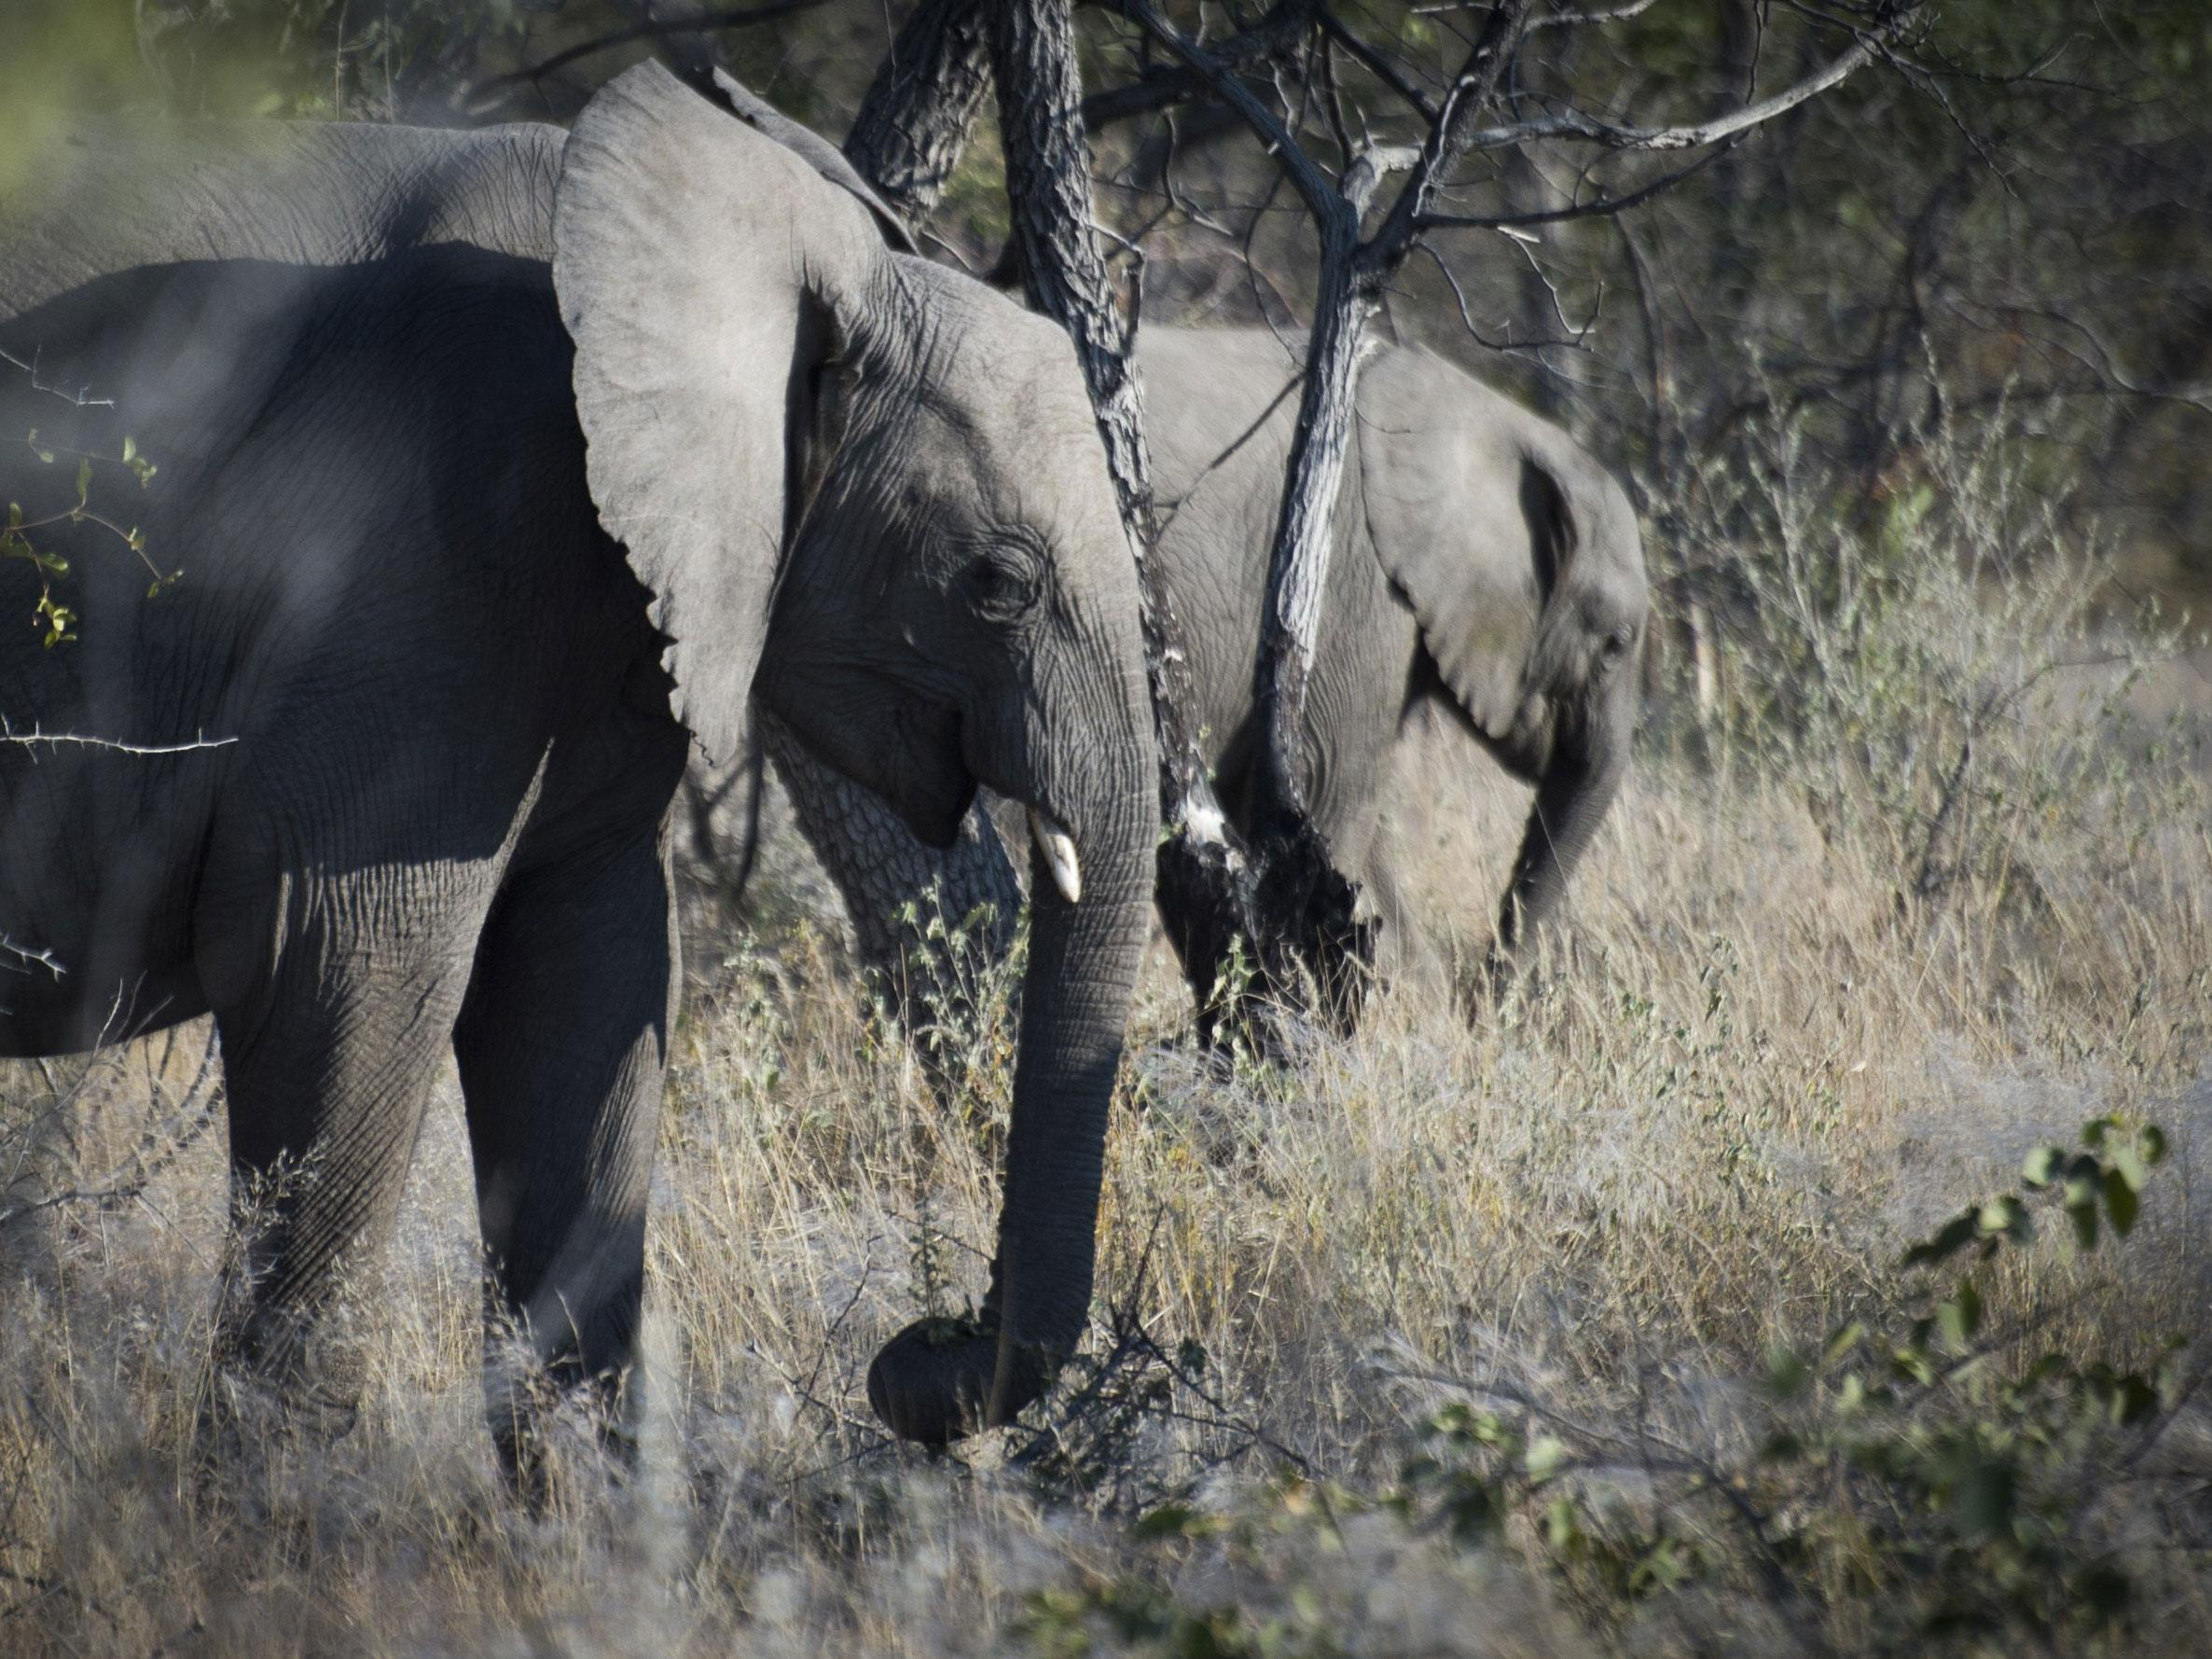 Big Game Hunter Trampled To Death By Elephant In Namibia  The Independent